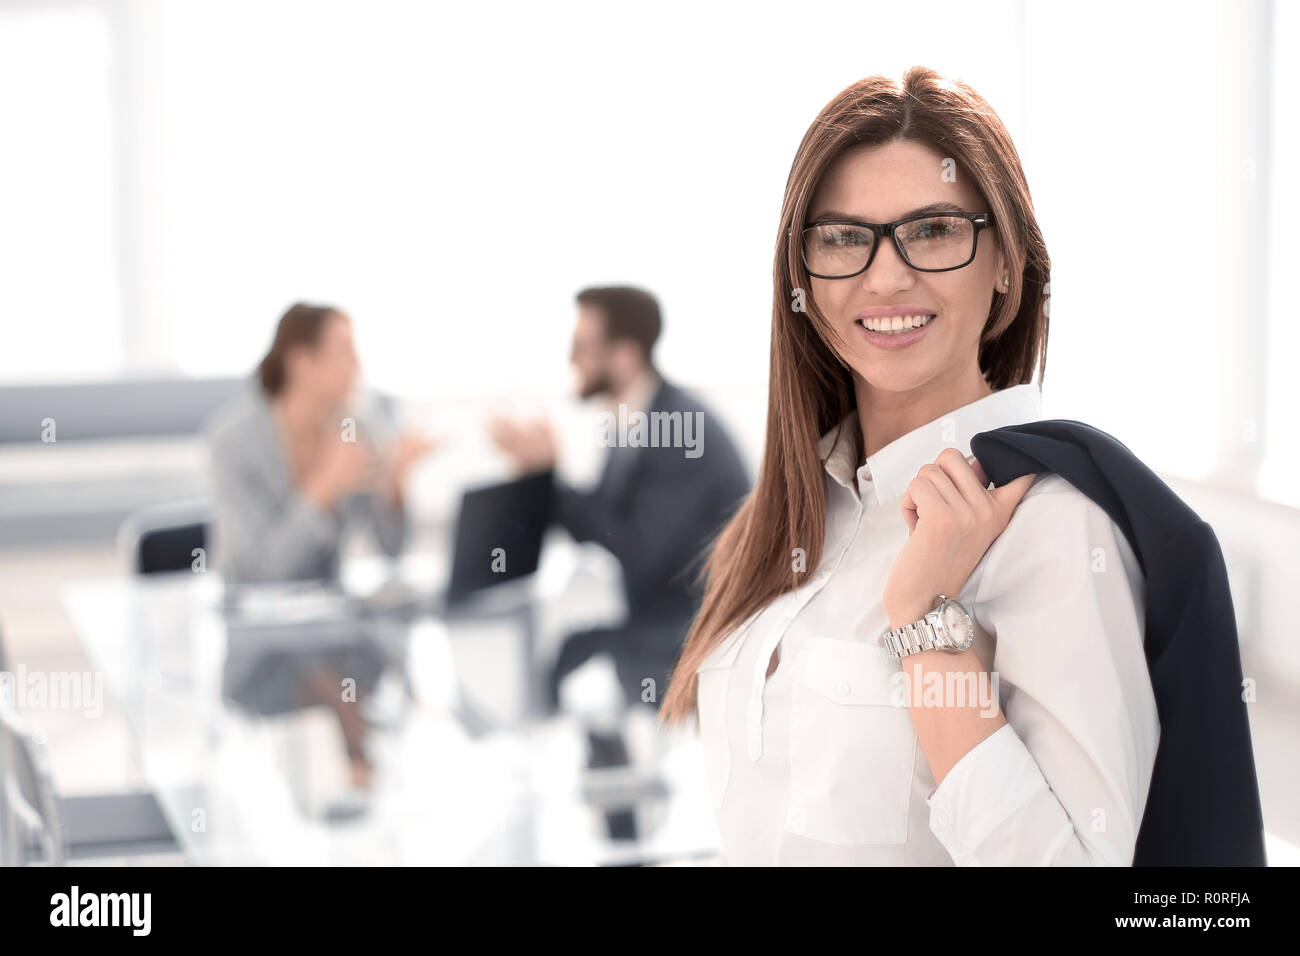 smiling business woman standing with a jacket over her shoulder - Stock Image